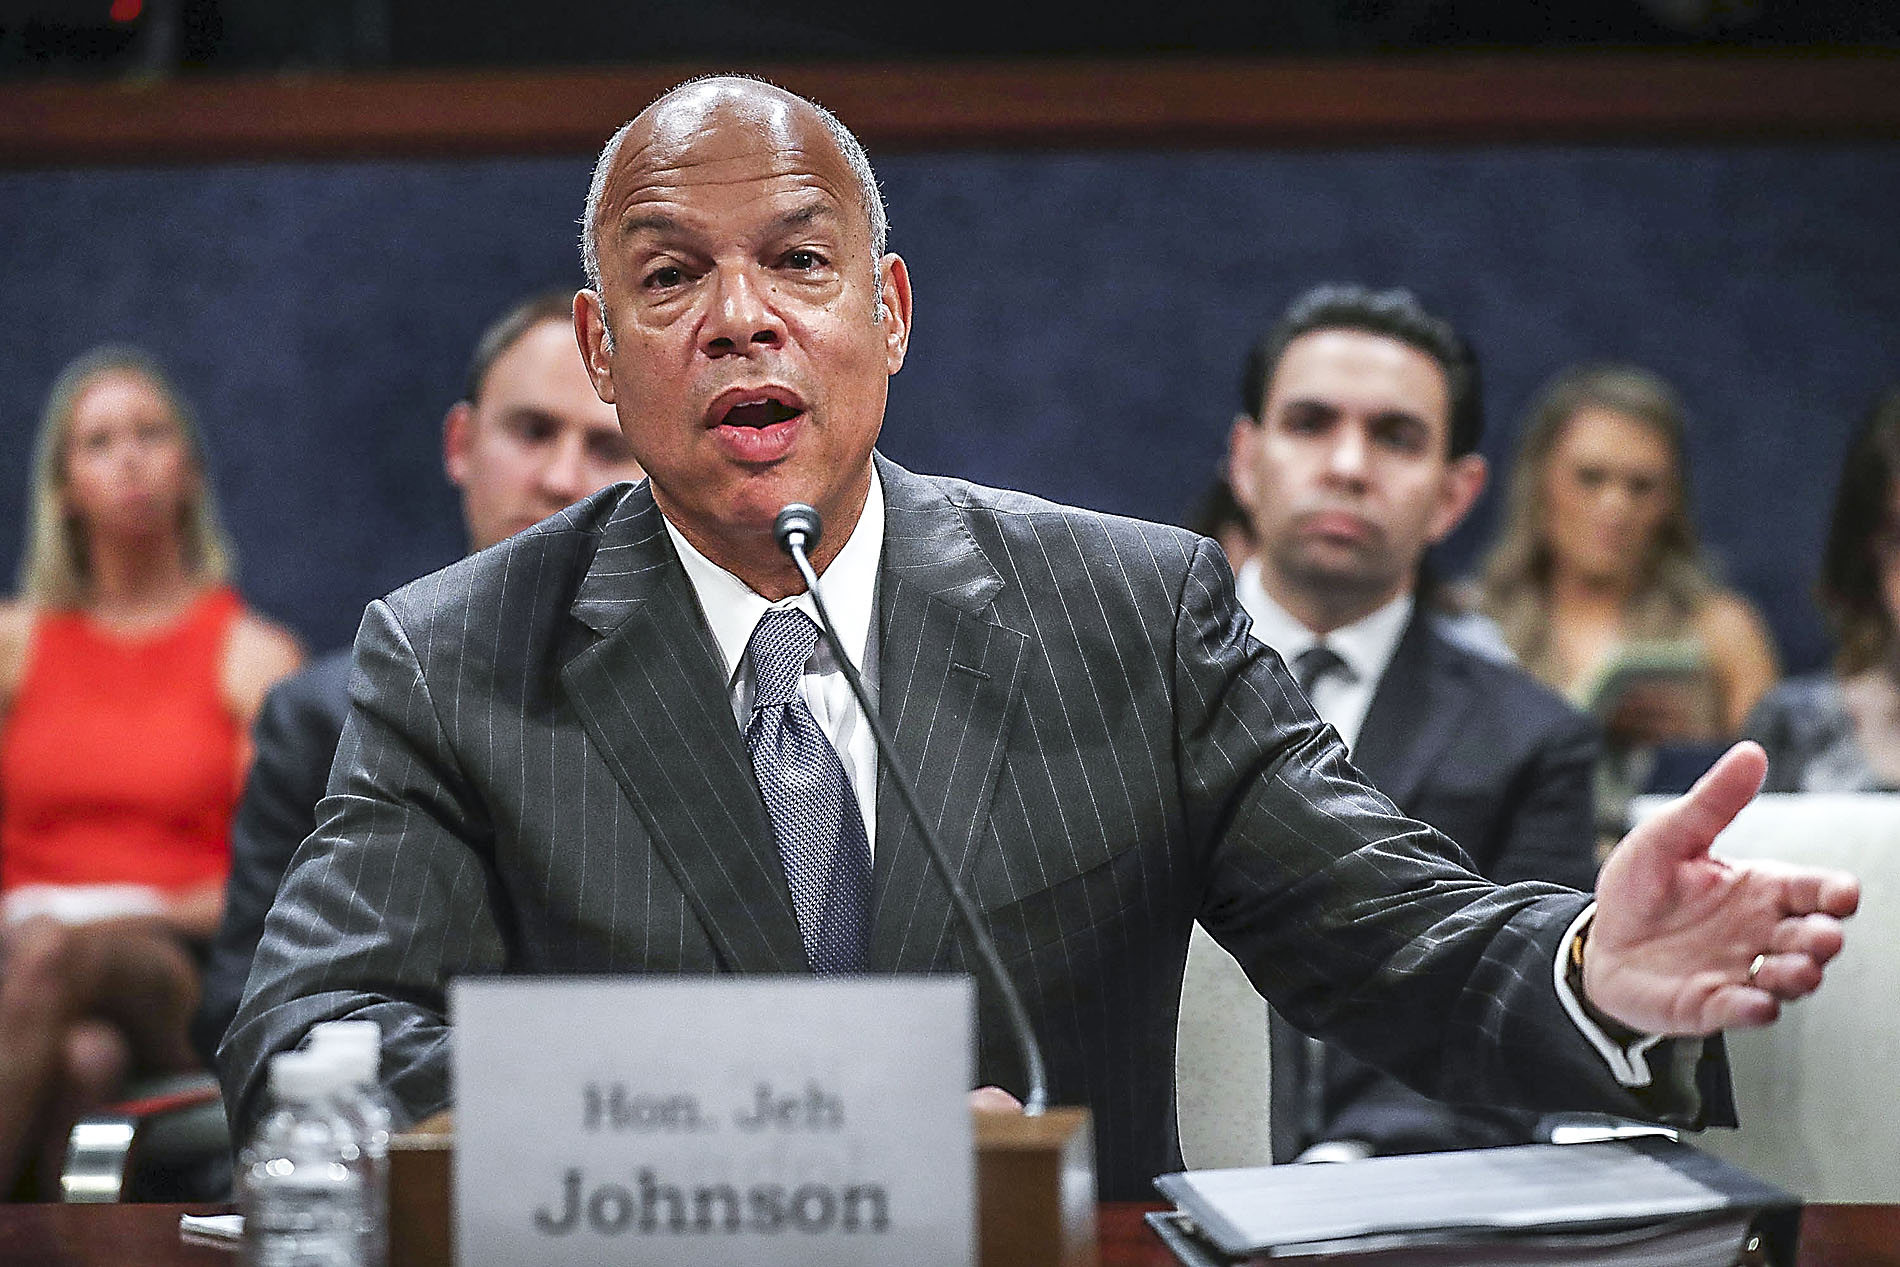 Former Homeland Security Secretary Jeh Johnson testifies before the House intelligence committee on June 21, 2017. (Chip Somodevilla/Getty Images)